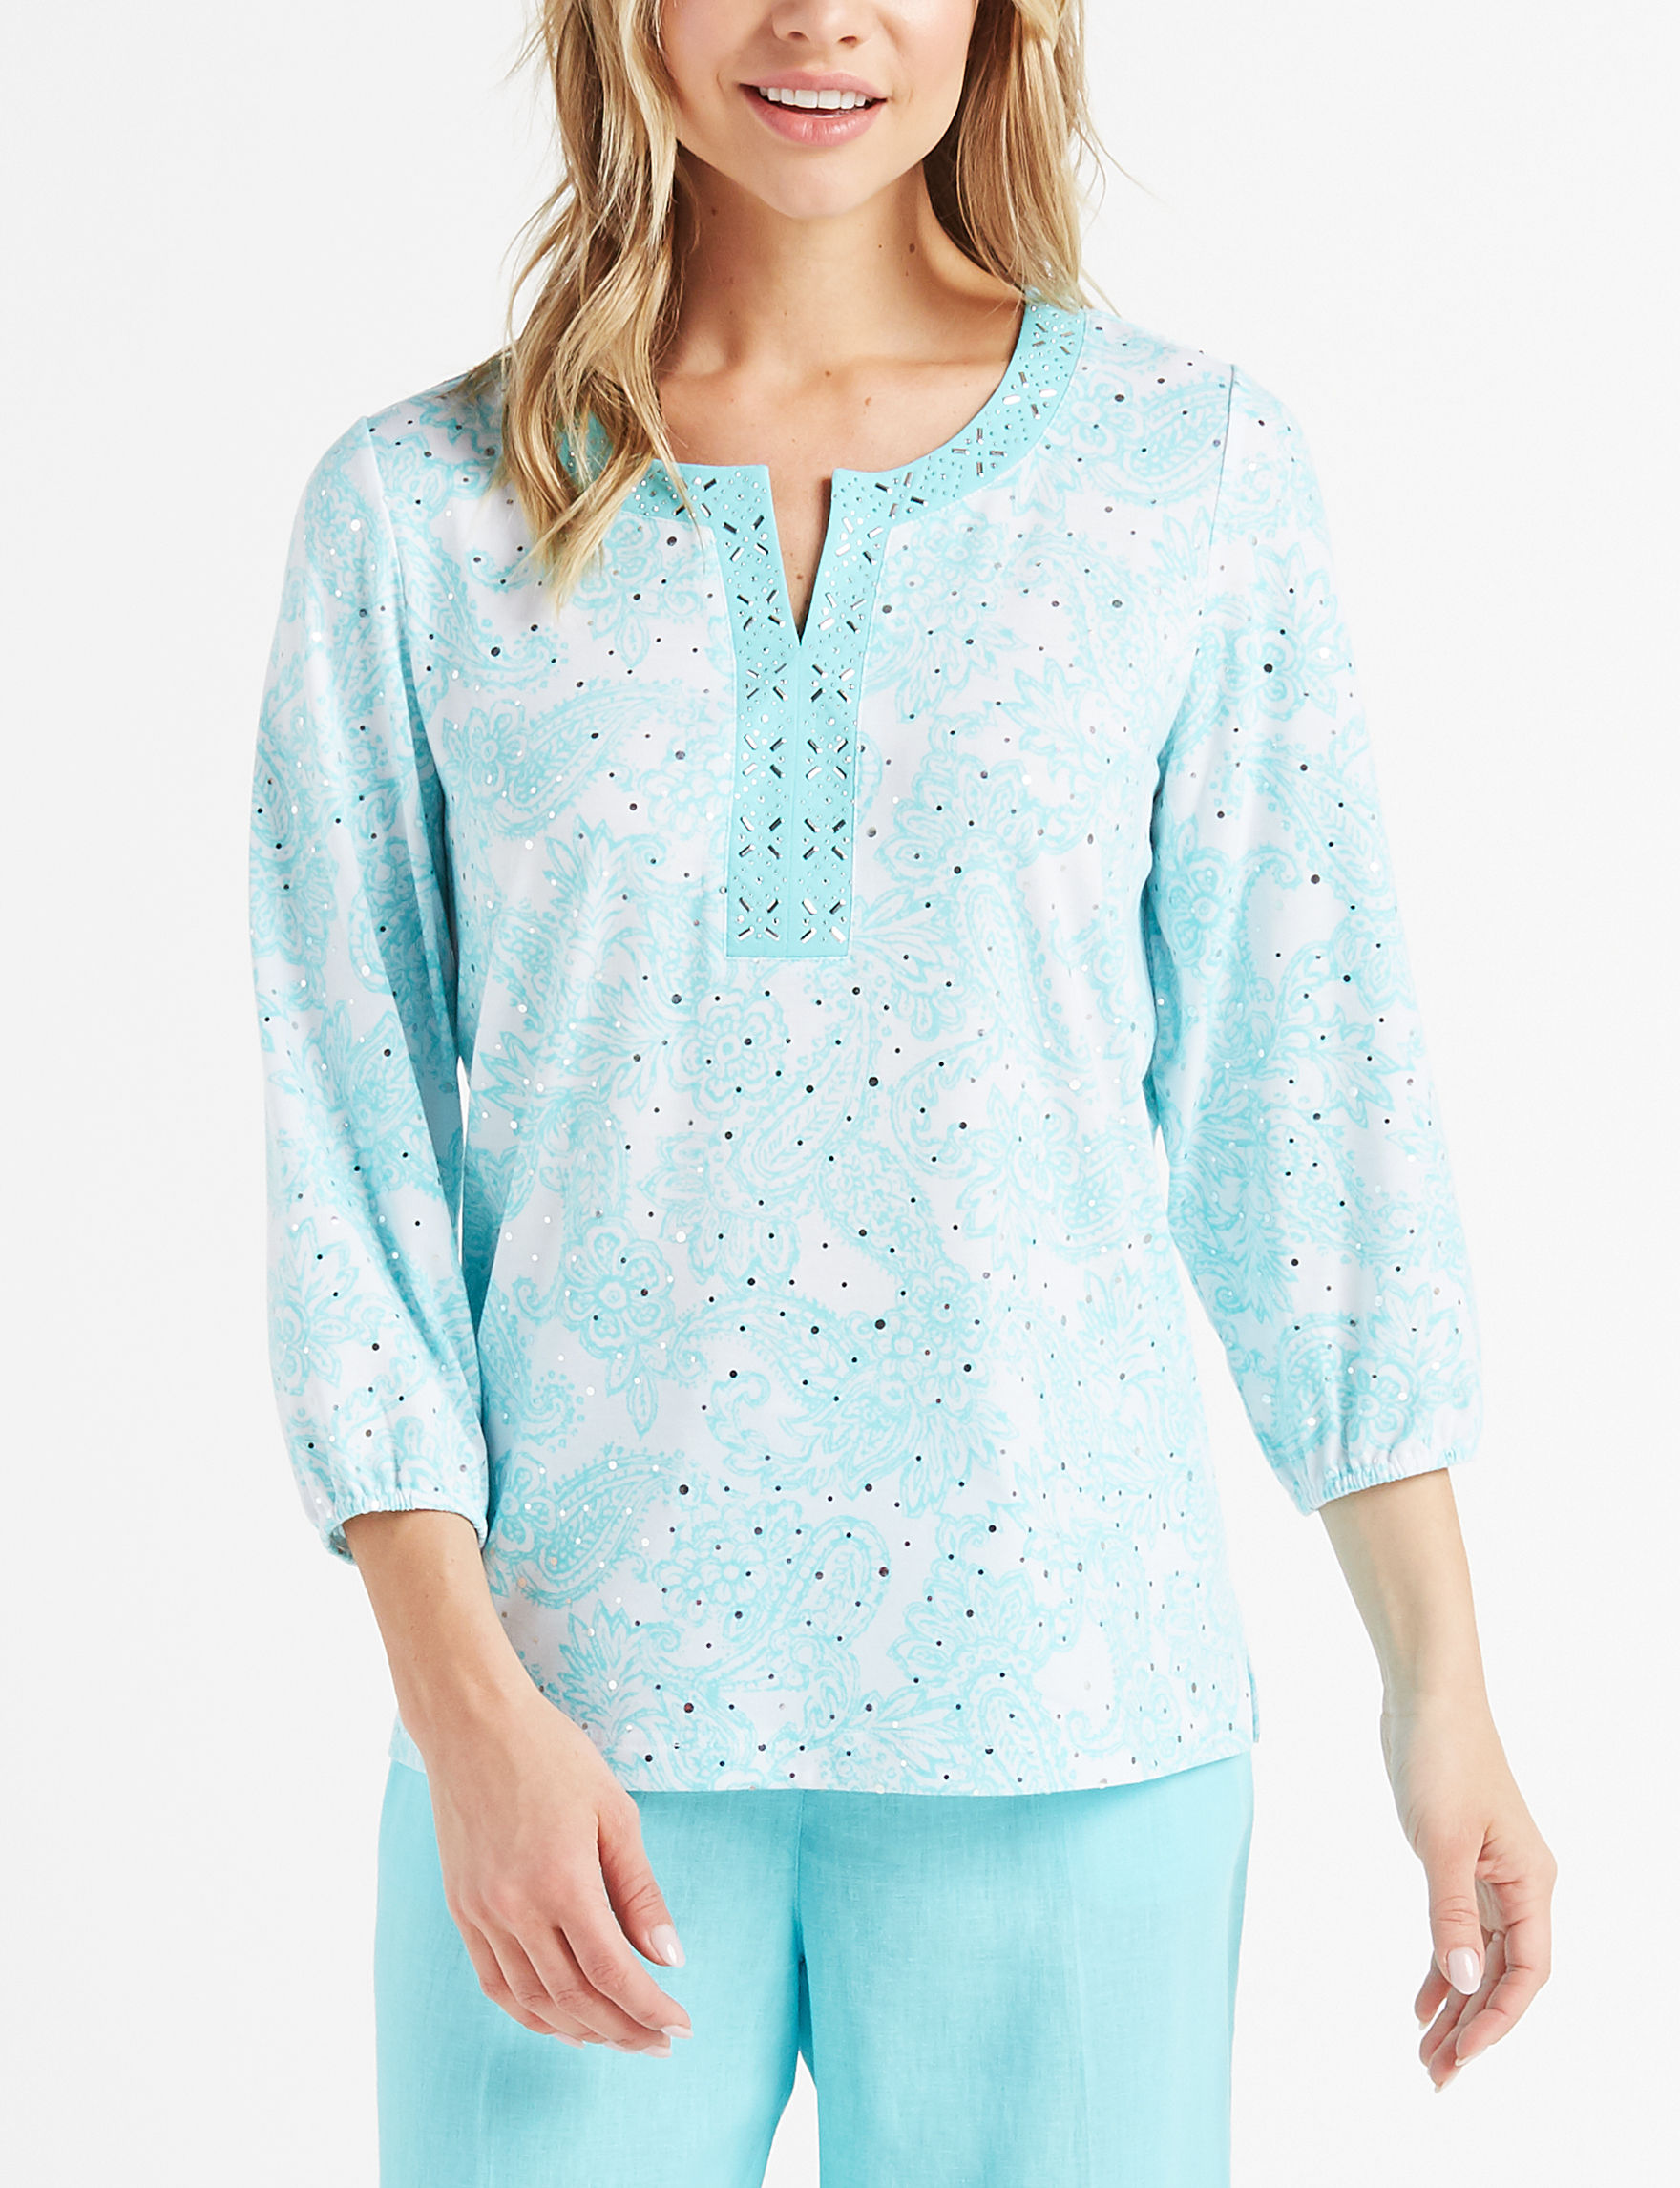 Cathy Daniels White / Blue Shirts & Blouses